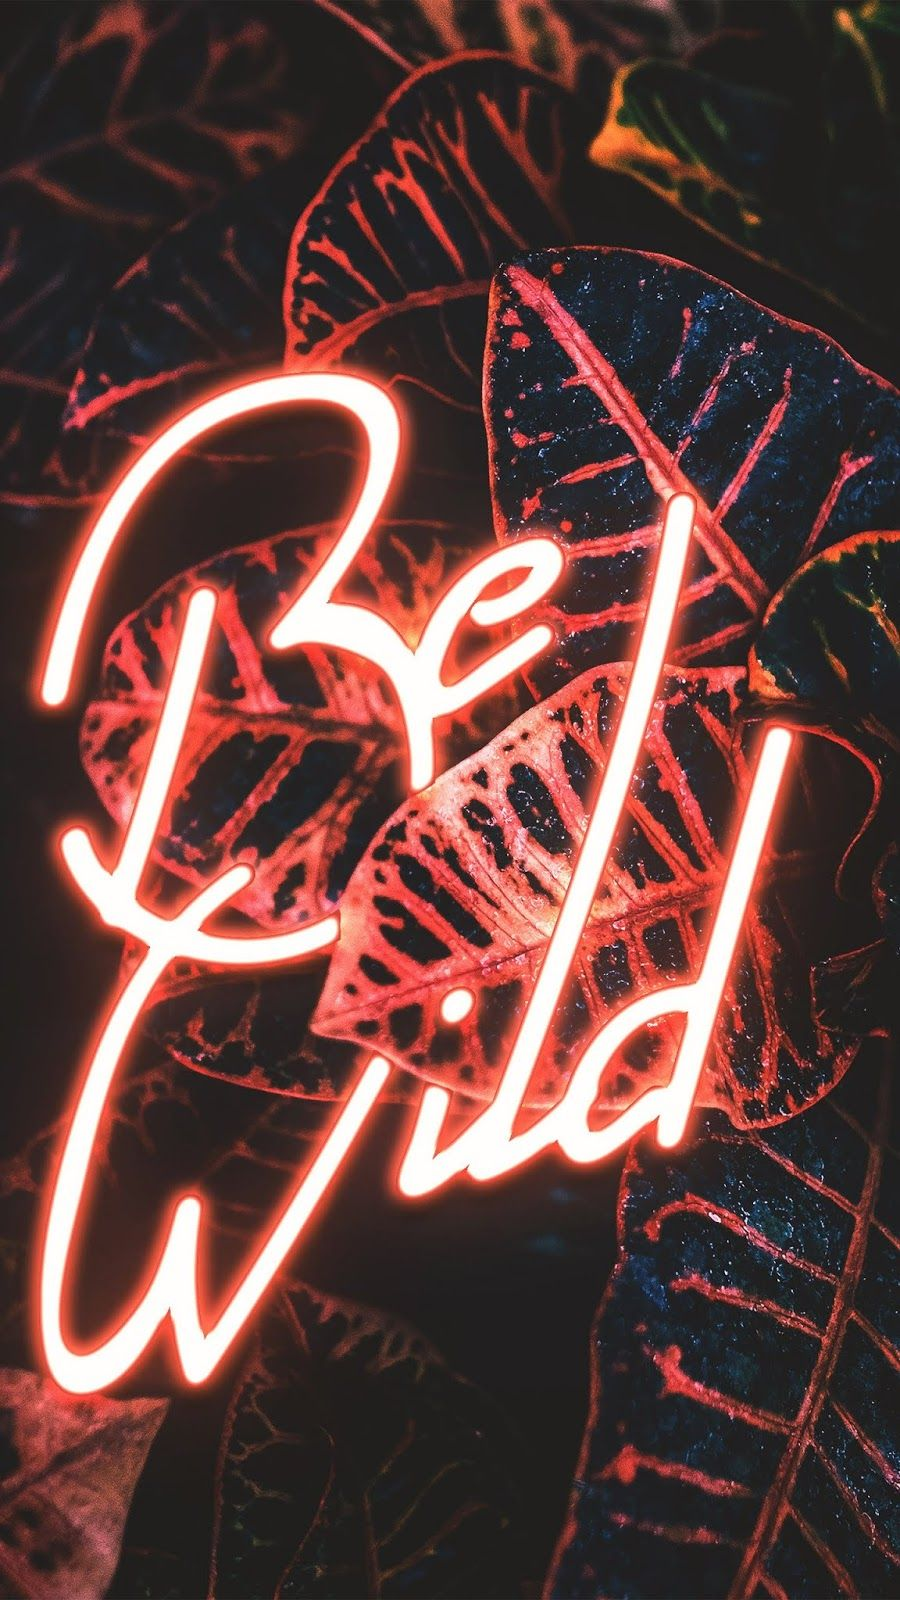 Be Wild Wallpaper Iphone Android Background Followme Cellphone Wallpaper Neon Wallpaper Neon Light Wallpaper